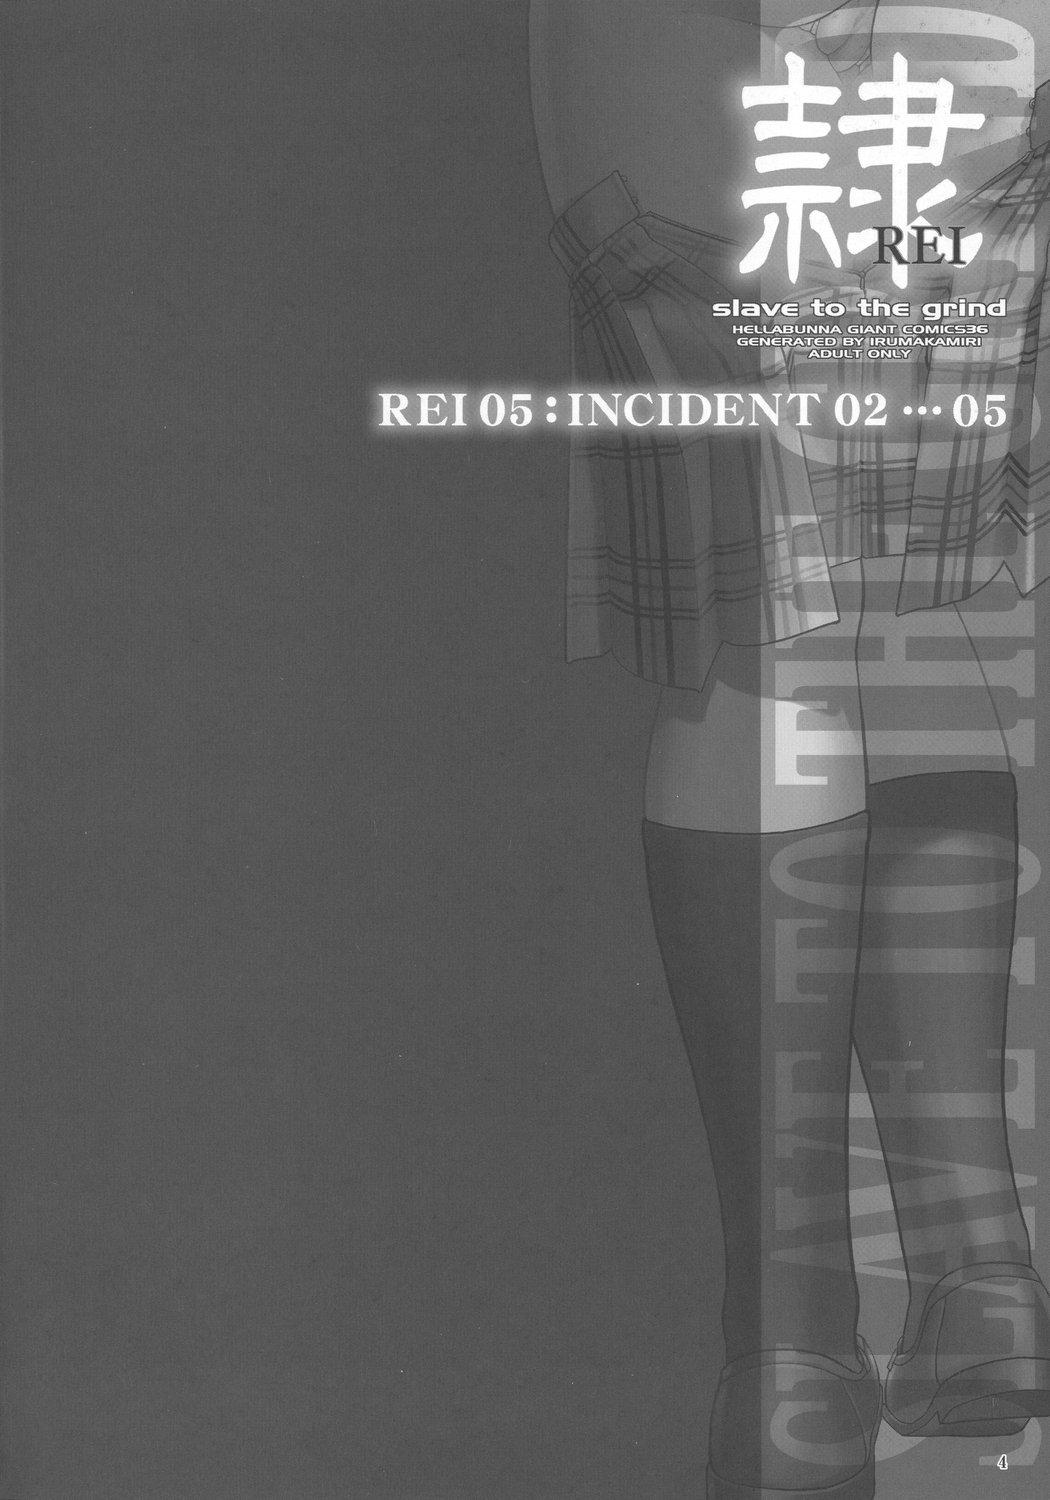 REI CHAPTER 05:INDECENT 02 2